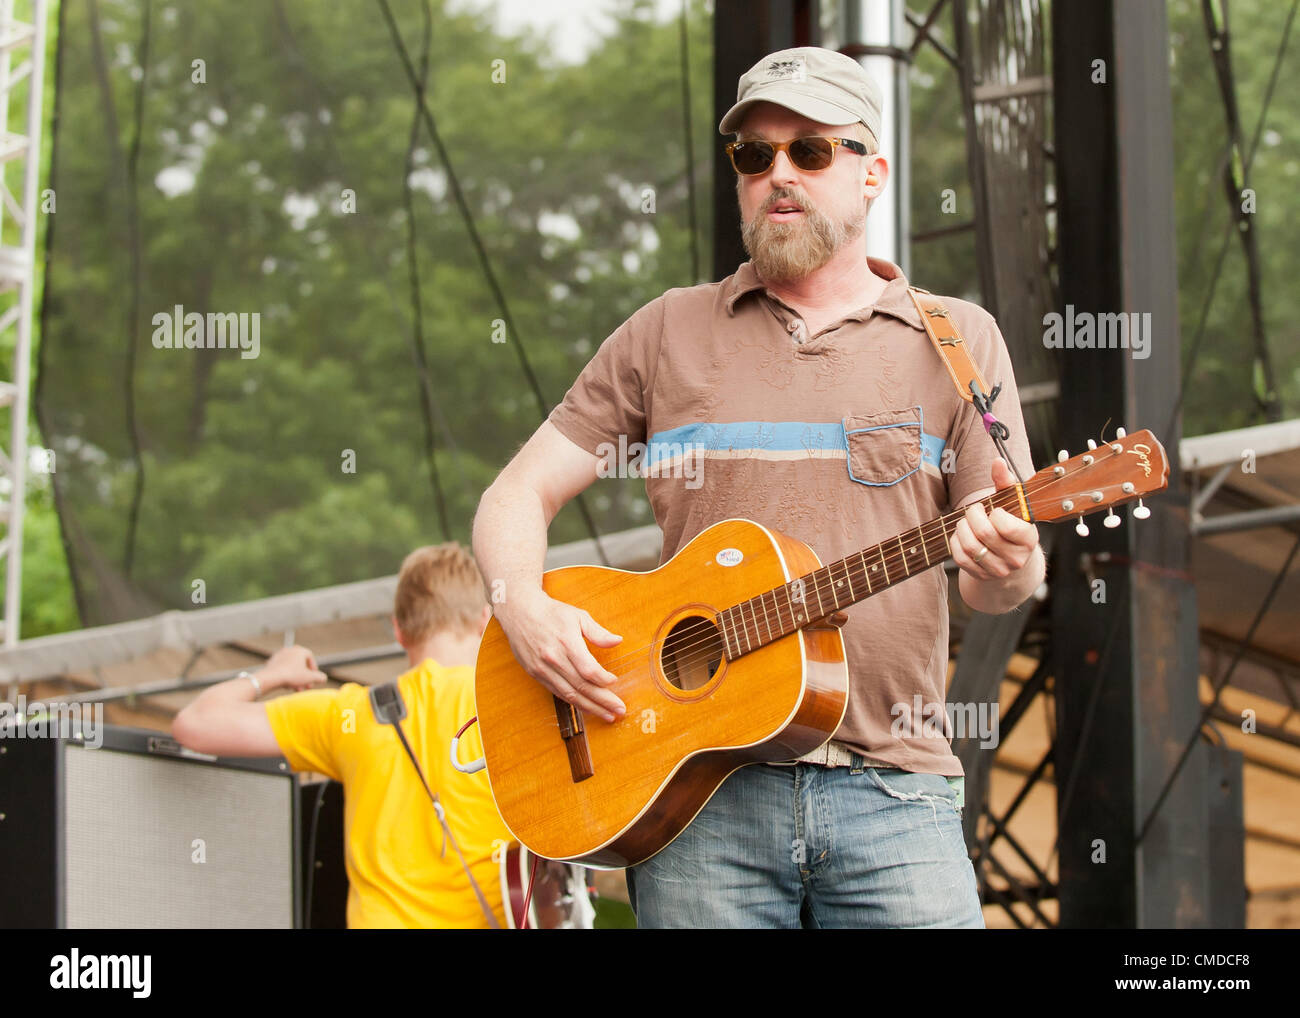 Rock star / musician John McCrea of the alt rock  indie rock  indy rock band Cake | Performing / playing guitar Stock Photo